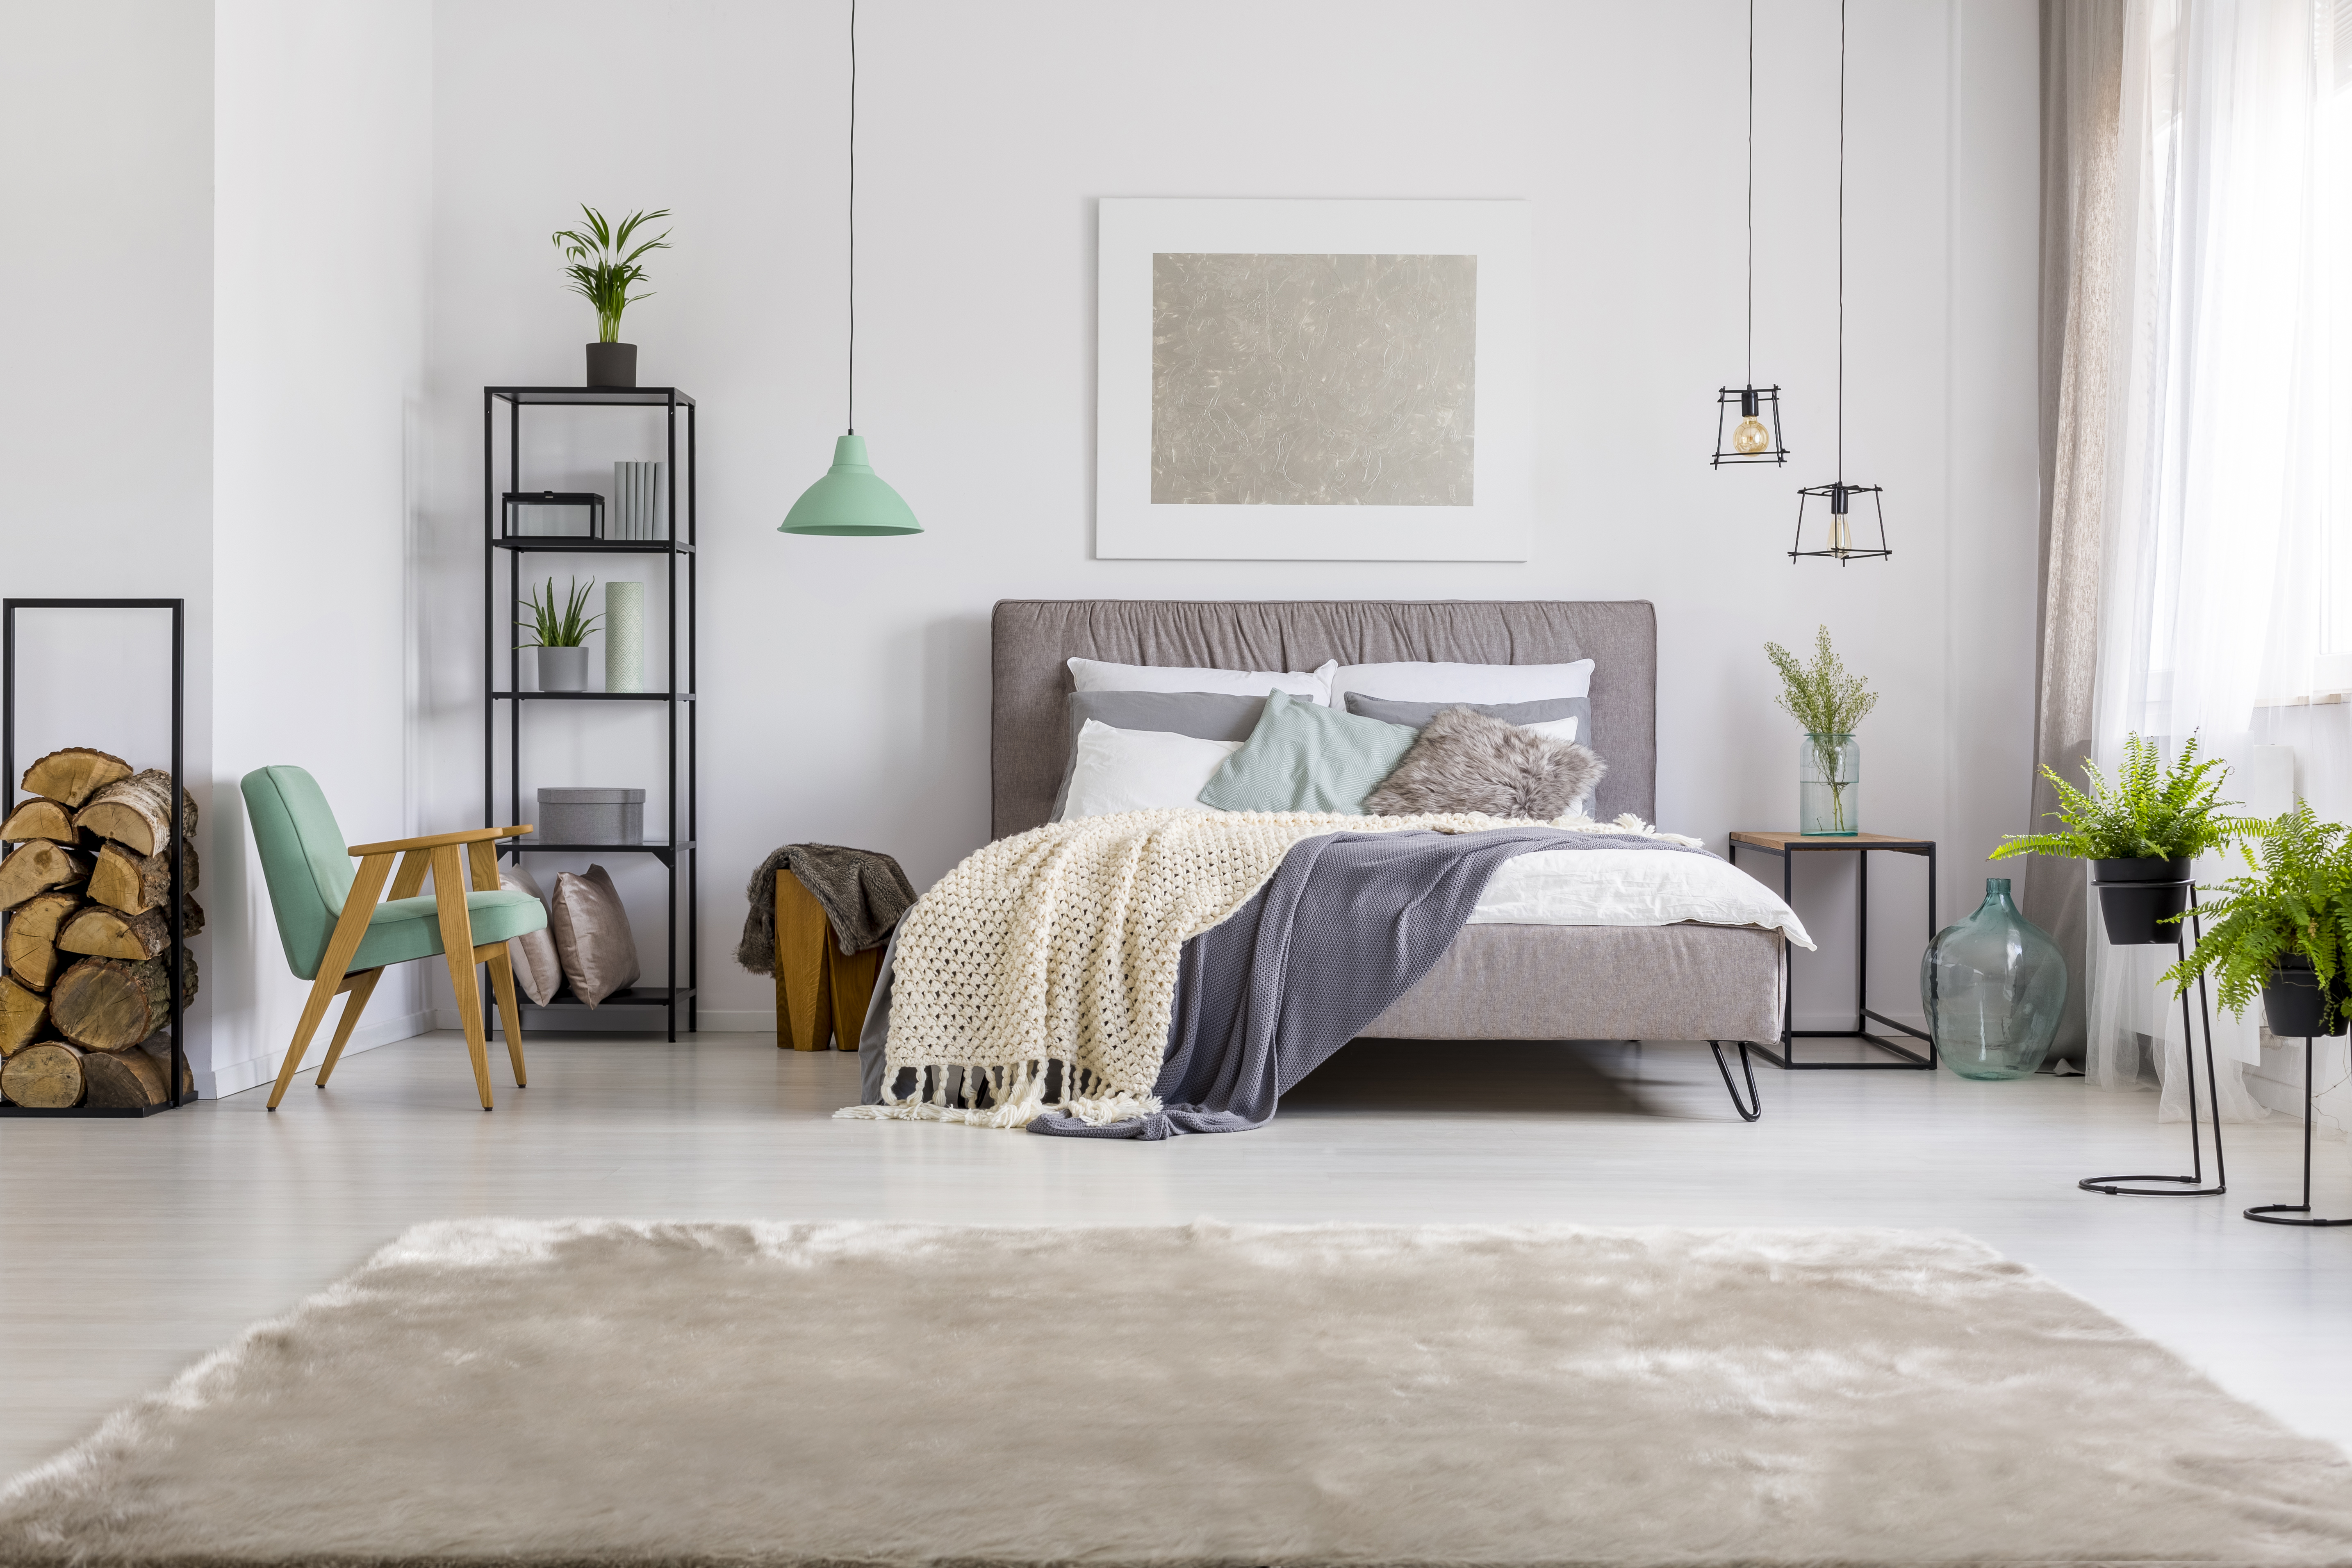 How to Keep the Cold Out of Bedroom Walls | Home Guides | SF